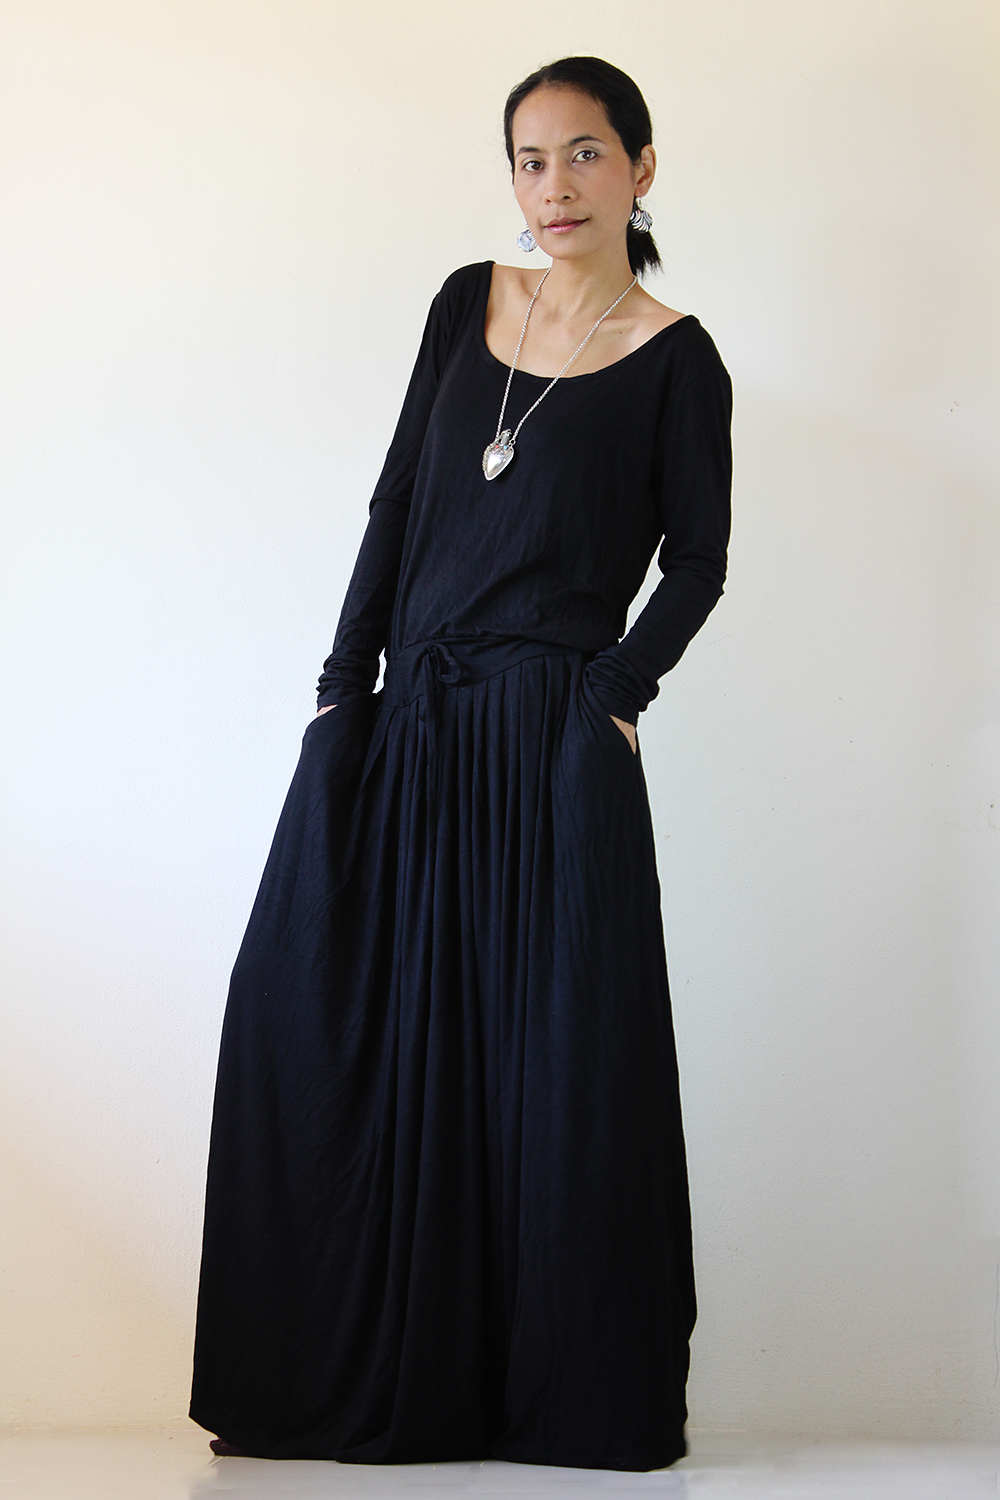 a18e89c332c9 Black Maxi Dress - Long Sleeve Dress on Luulla